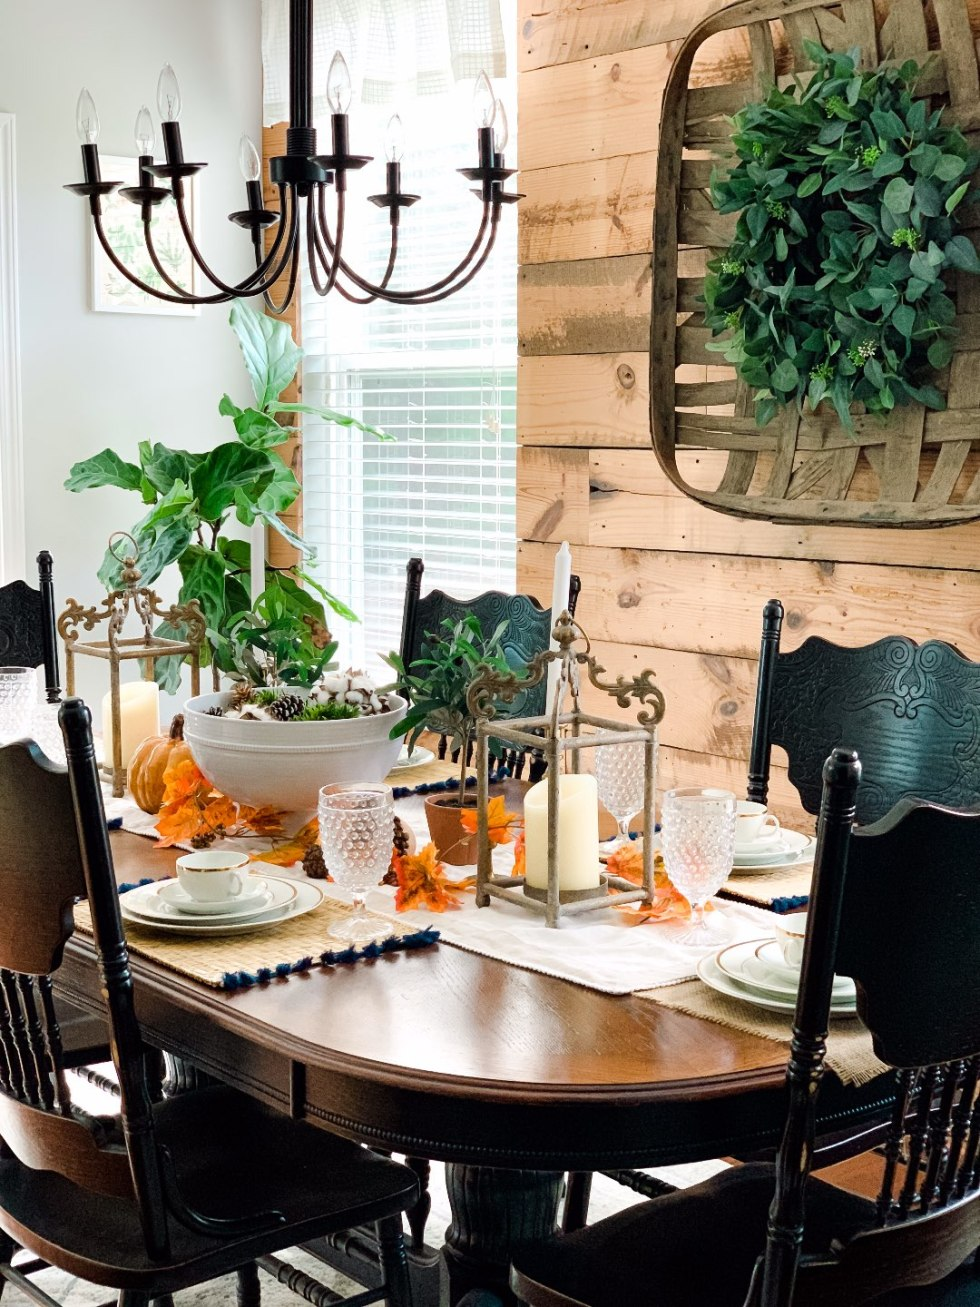 Our Fall Home Decor & Foyer Reveal - I'm Fixin' To - @mbg0112 | Cozy Fall Decor Ideas for your Home & Foyer by popular North Carolina life and style blog, I'm Fixin' To: image of a home dining room decorated with various fall decor items.